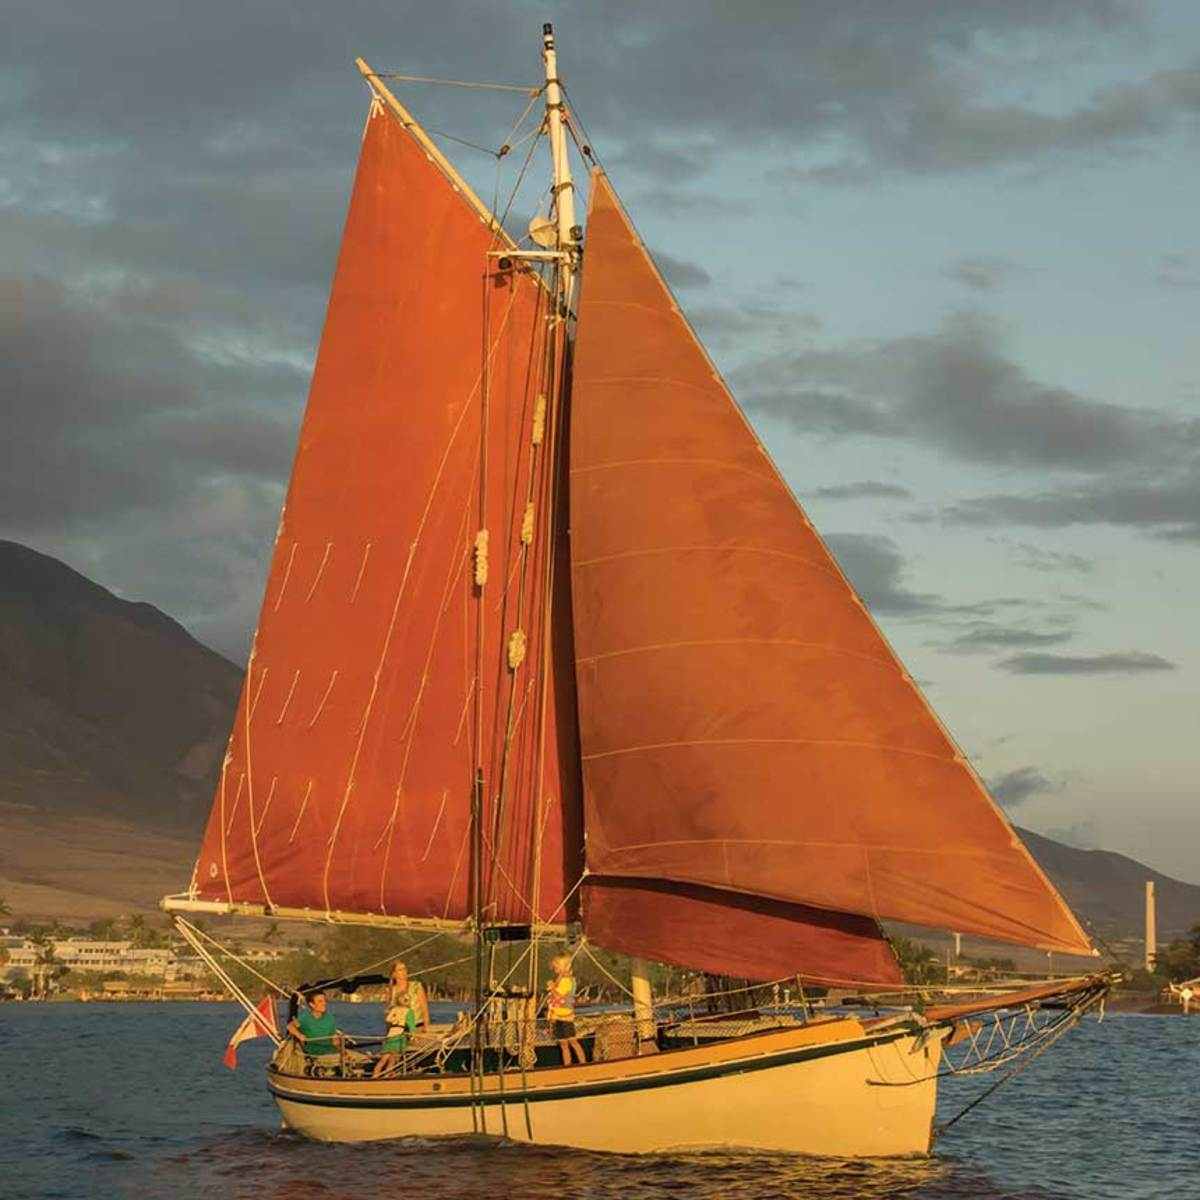 Vixen sails off Maui, fully loaded with all provisions for a month at sea.